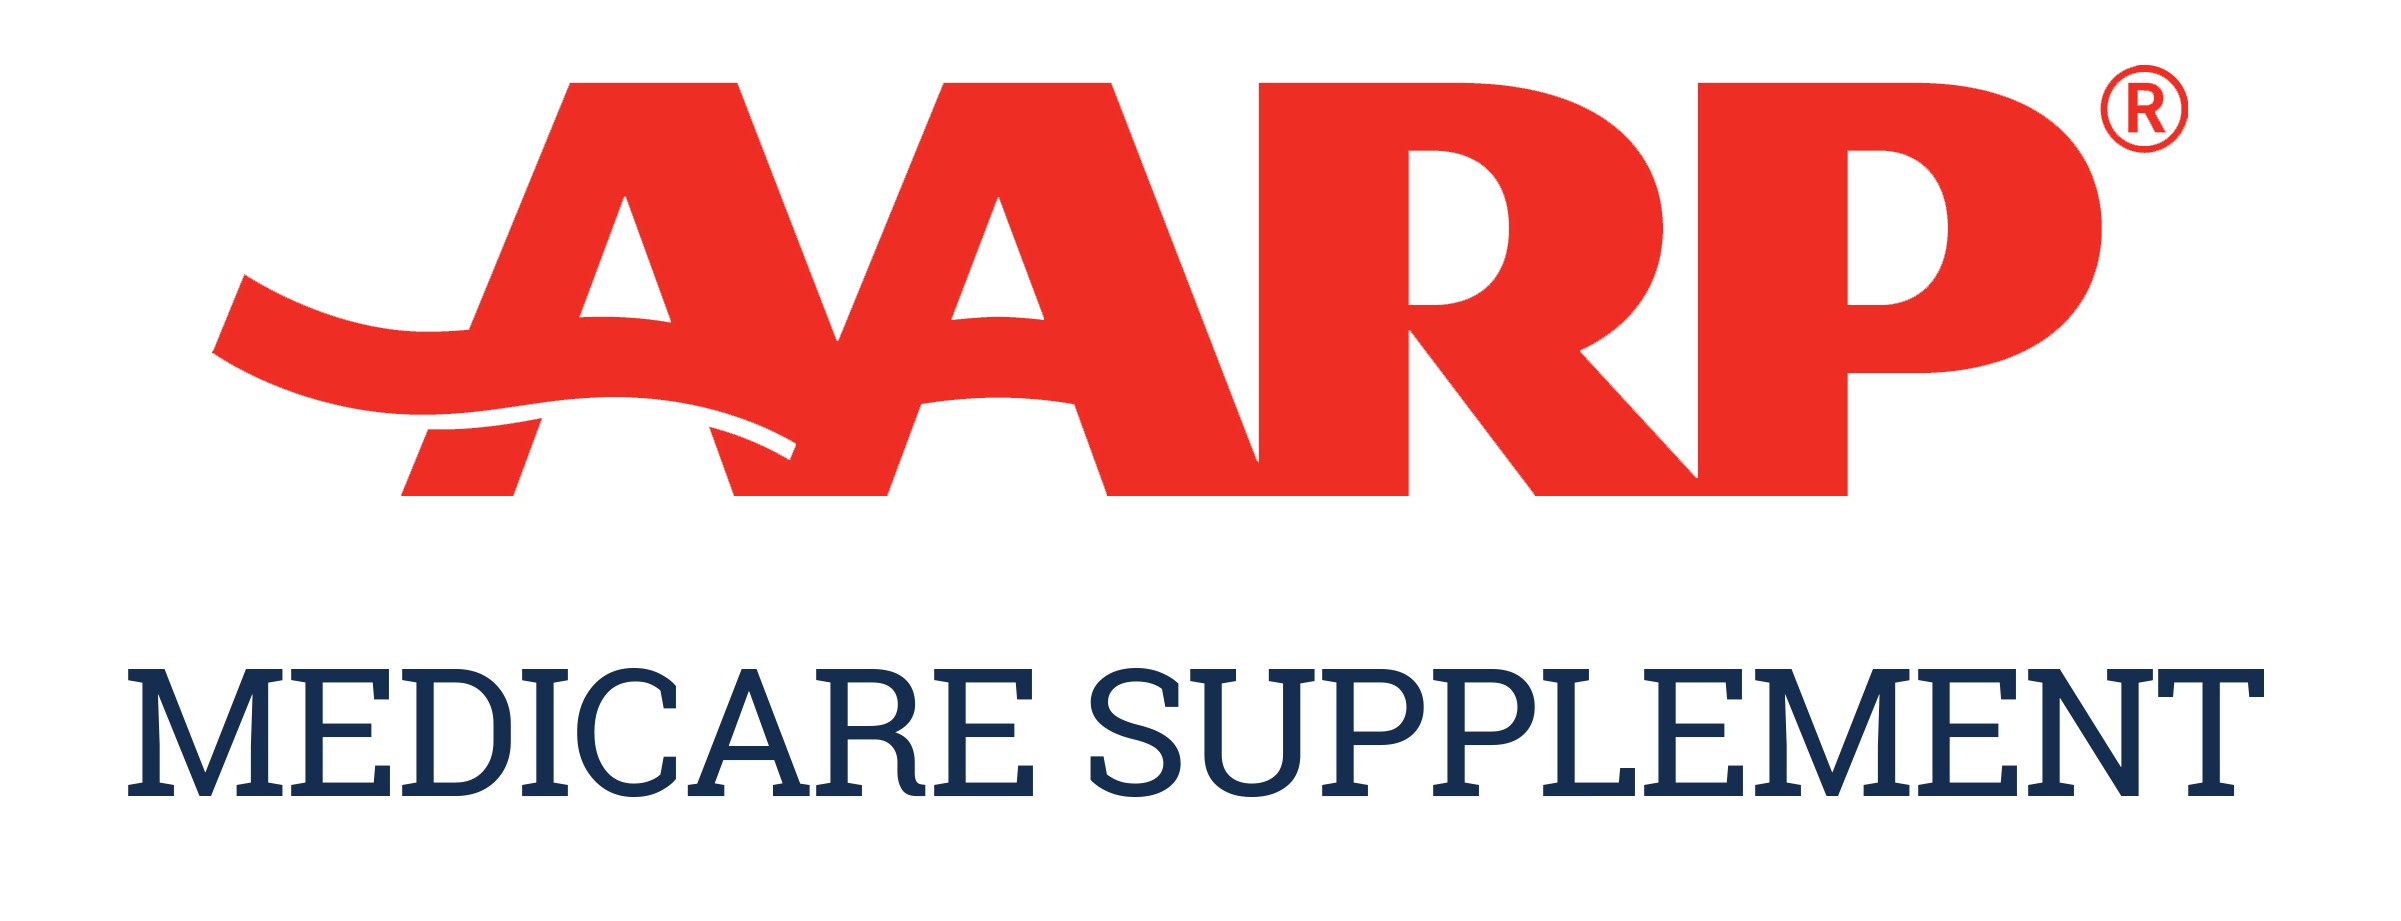 aarp medicare supplement